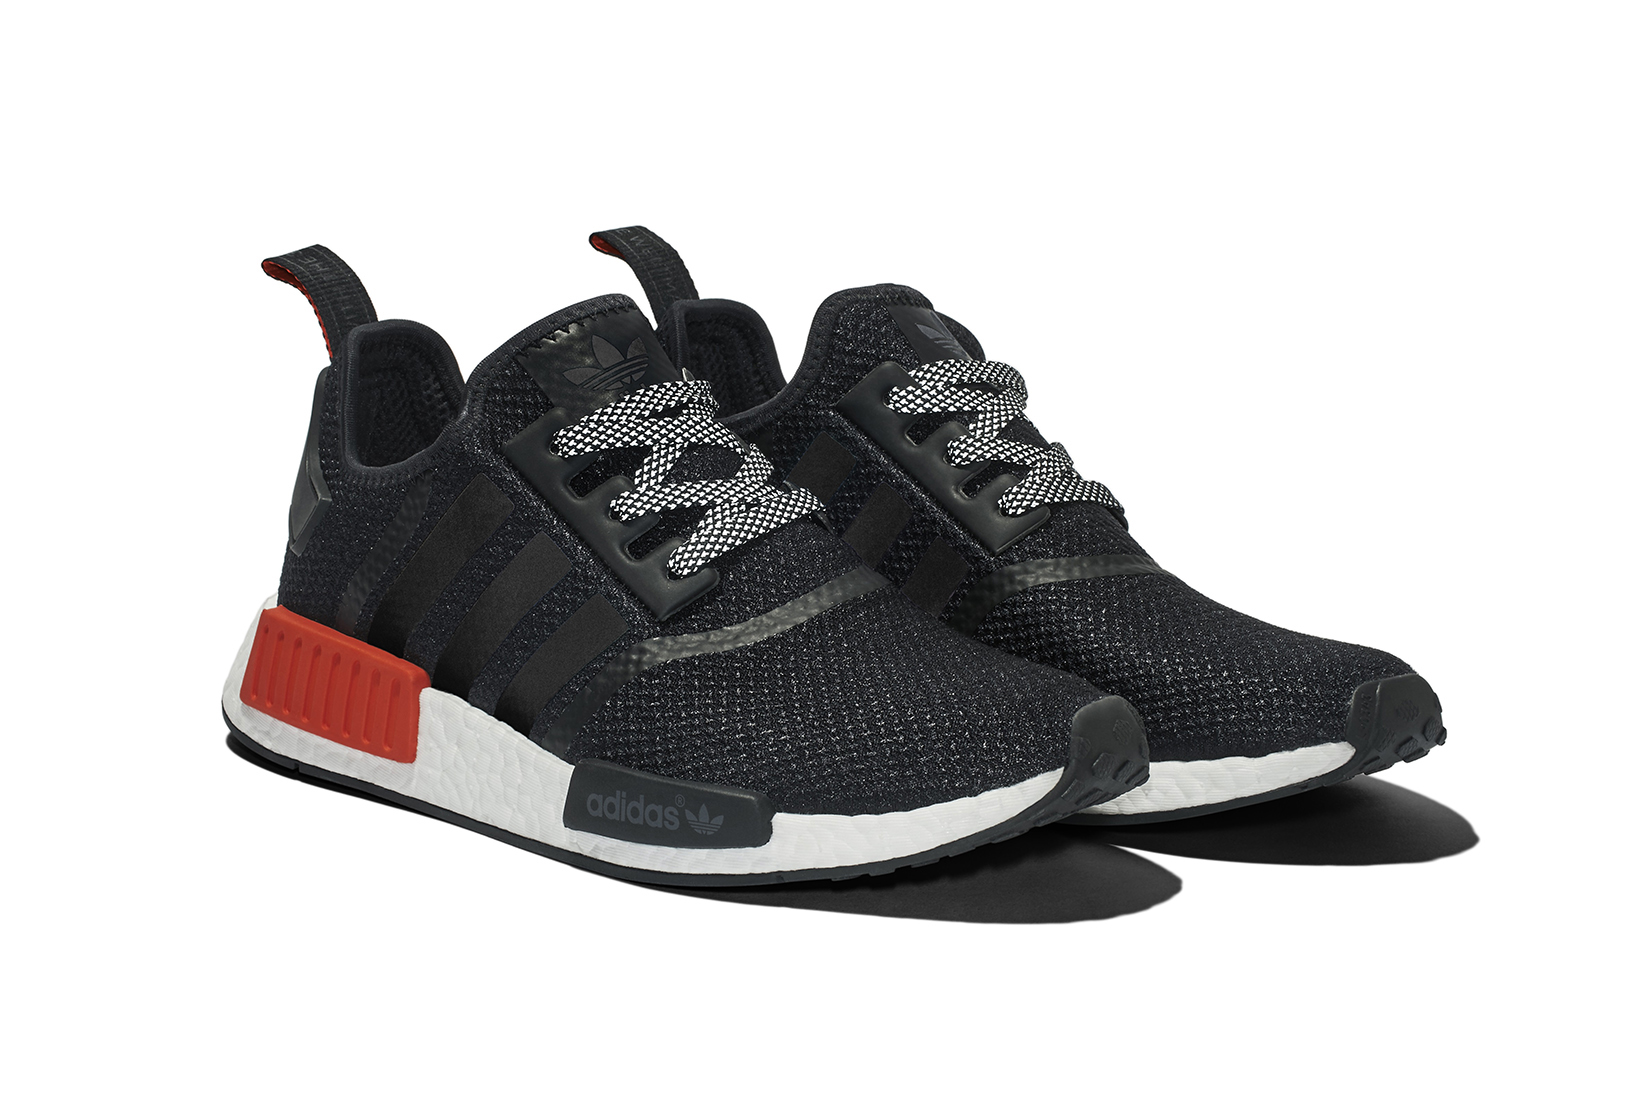 adidas NMD Limited-Edition R1 and R2 Update Hong Kong Flagship Store - 3760405